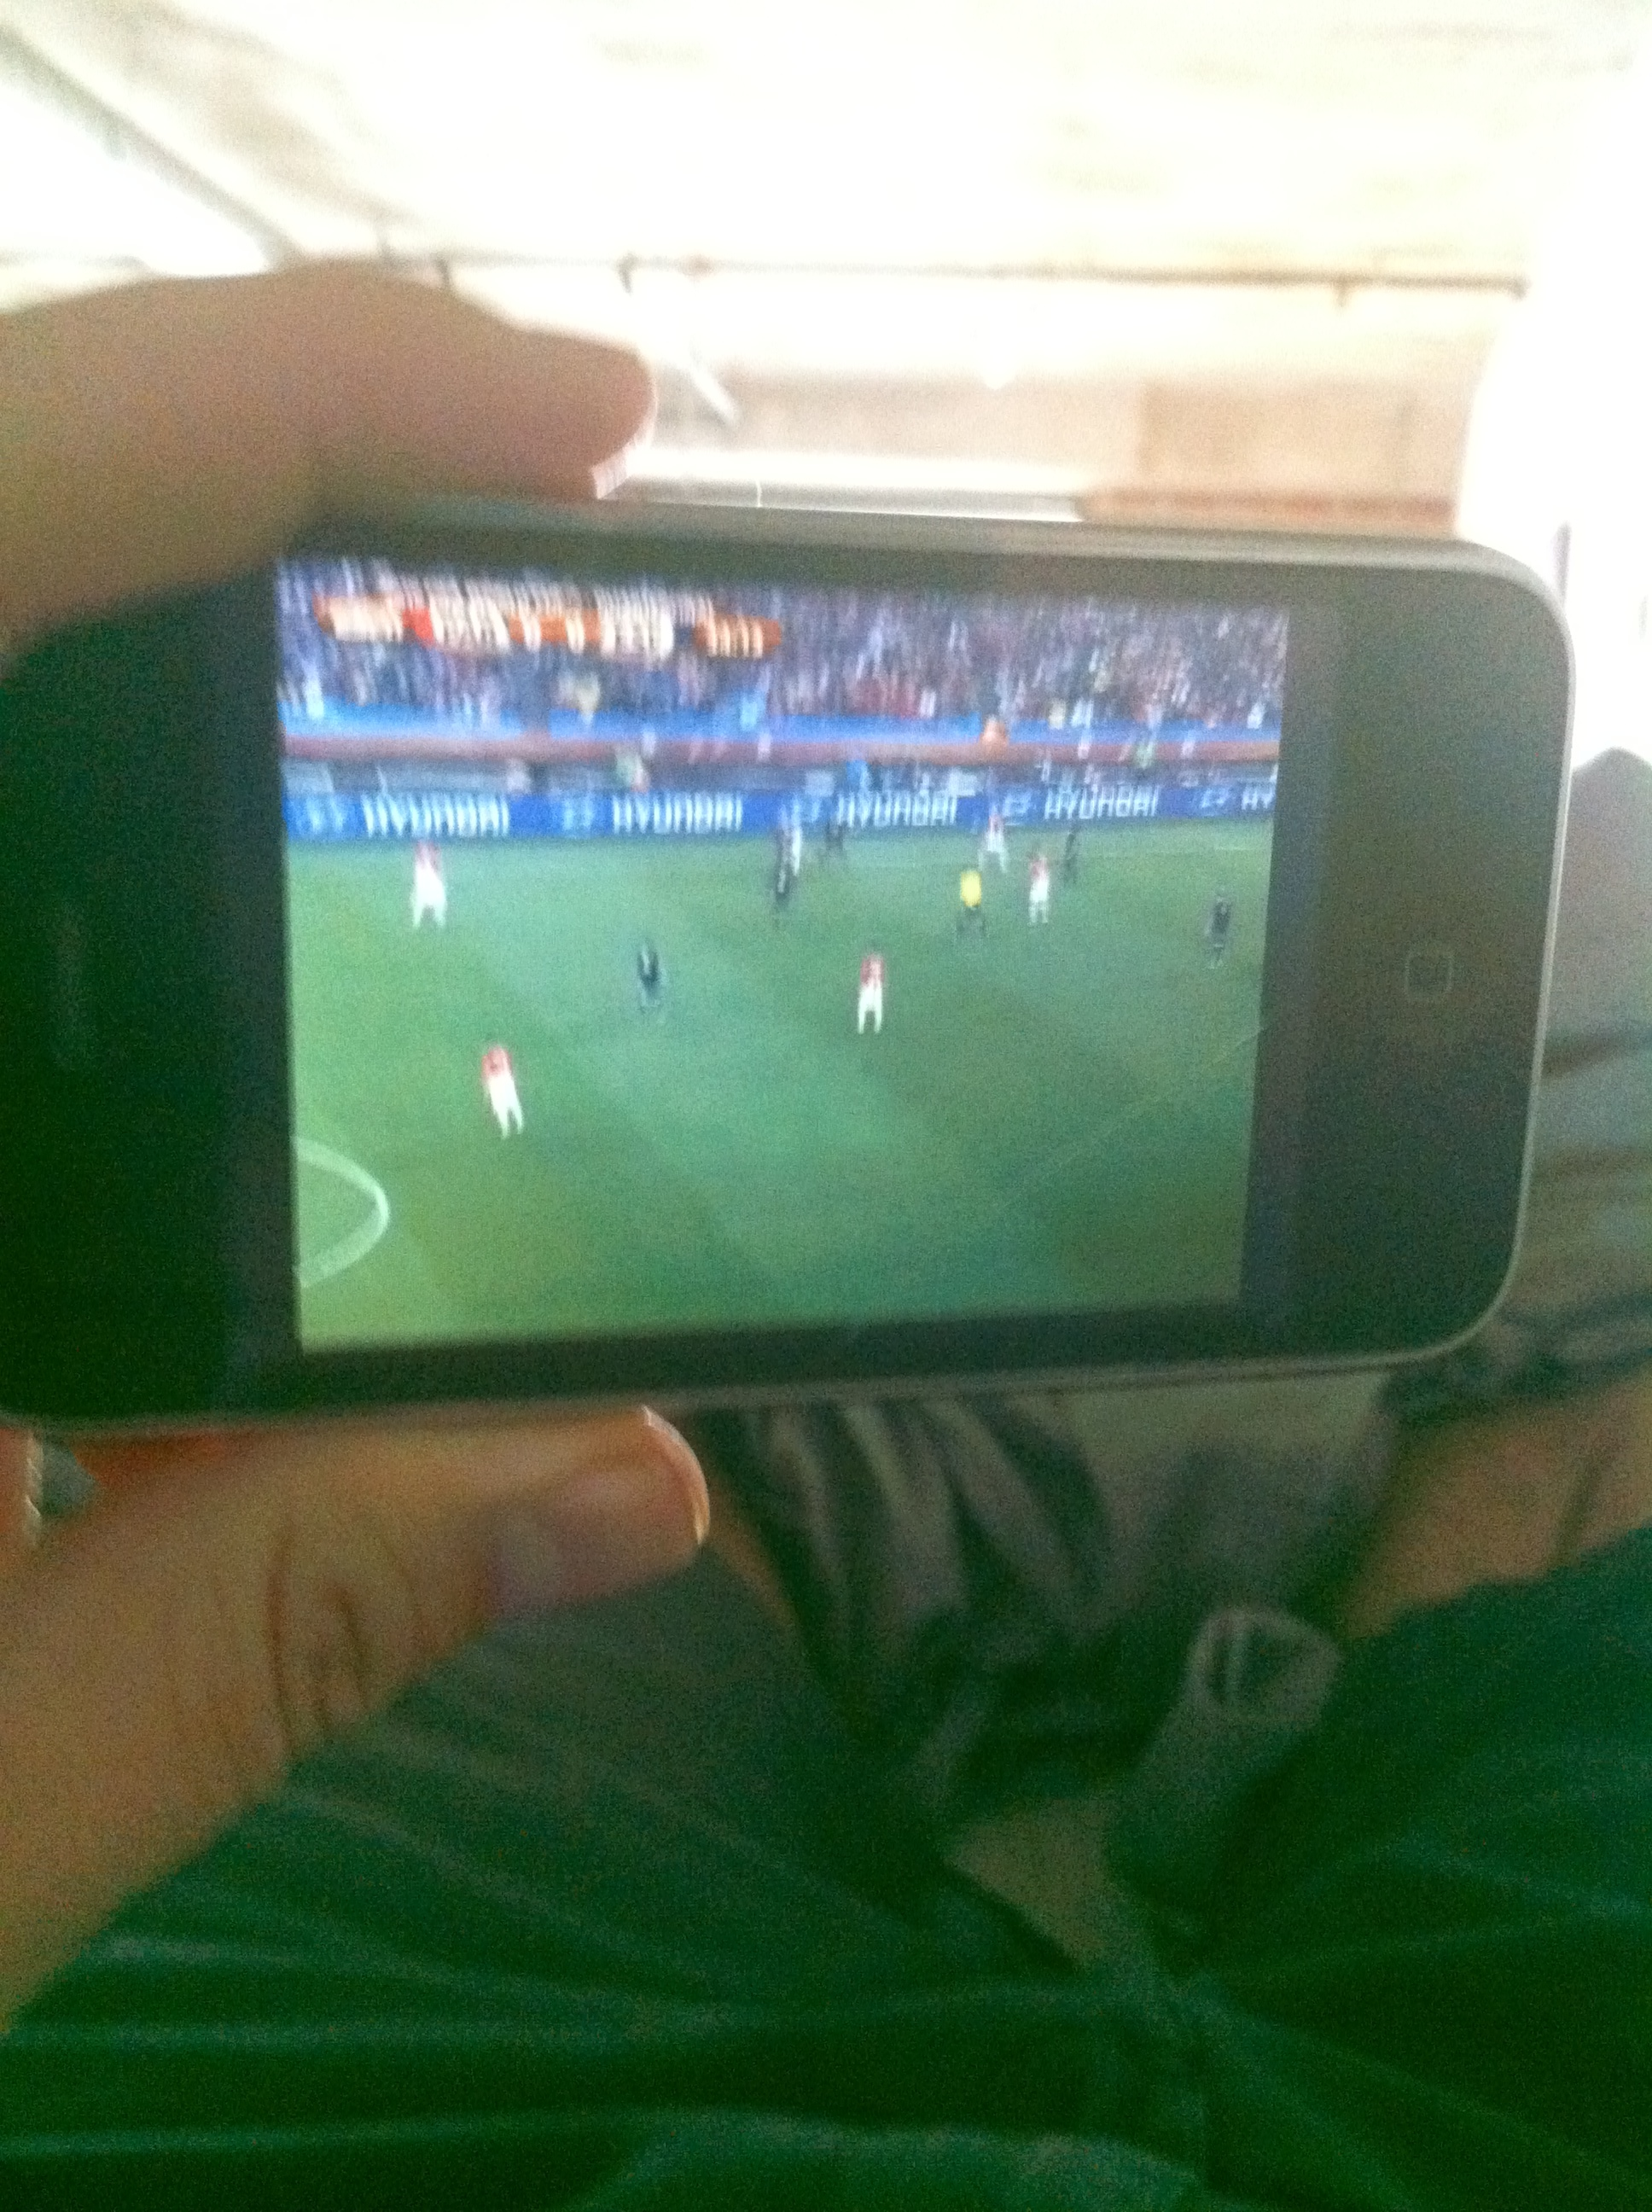 Right after I figured out how to watch the World Cup Qualifier on my iPhone.